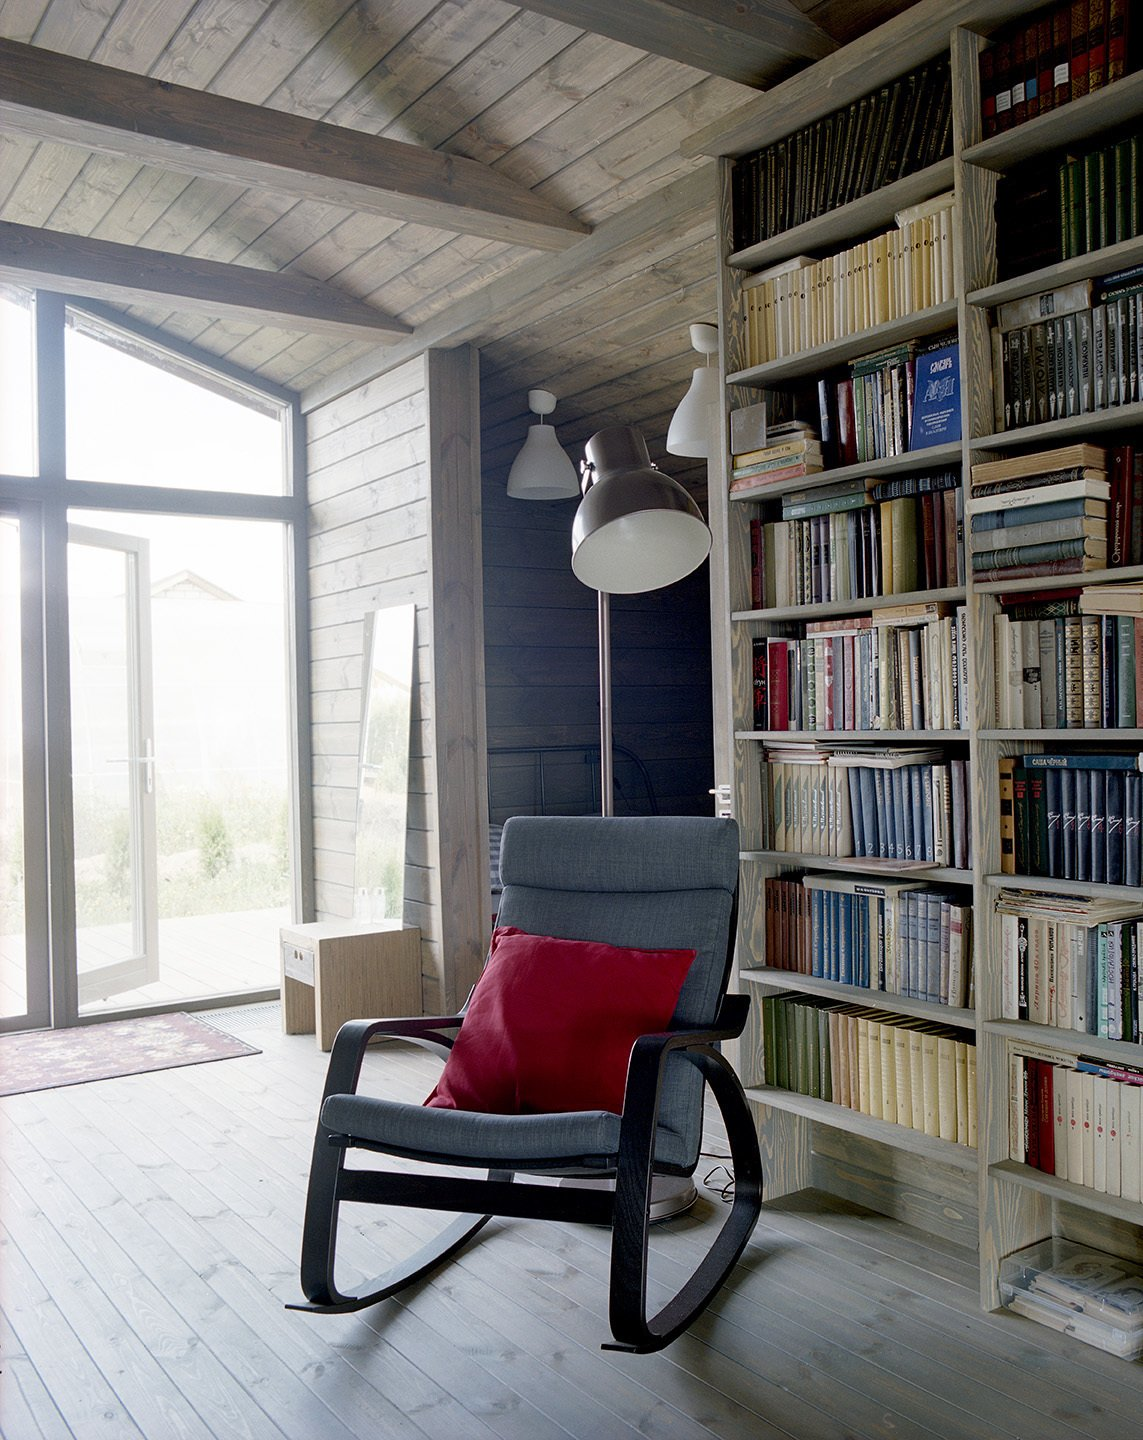 Near a Gent wood-burning stove by Thorma in the living area, an IKEA Poäng chair and ottoman provide a cozy spot for reading. Thanks to the passive design strategies utilized by Ovchinnikov, the house stays warm through the winter with only minimal heating required.  Photo 5 of 8 in Seeing Double